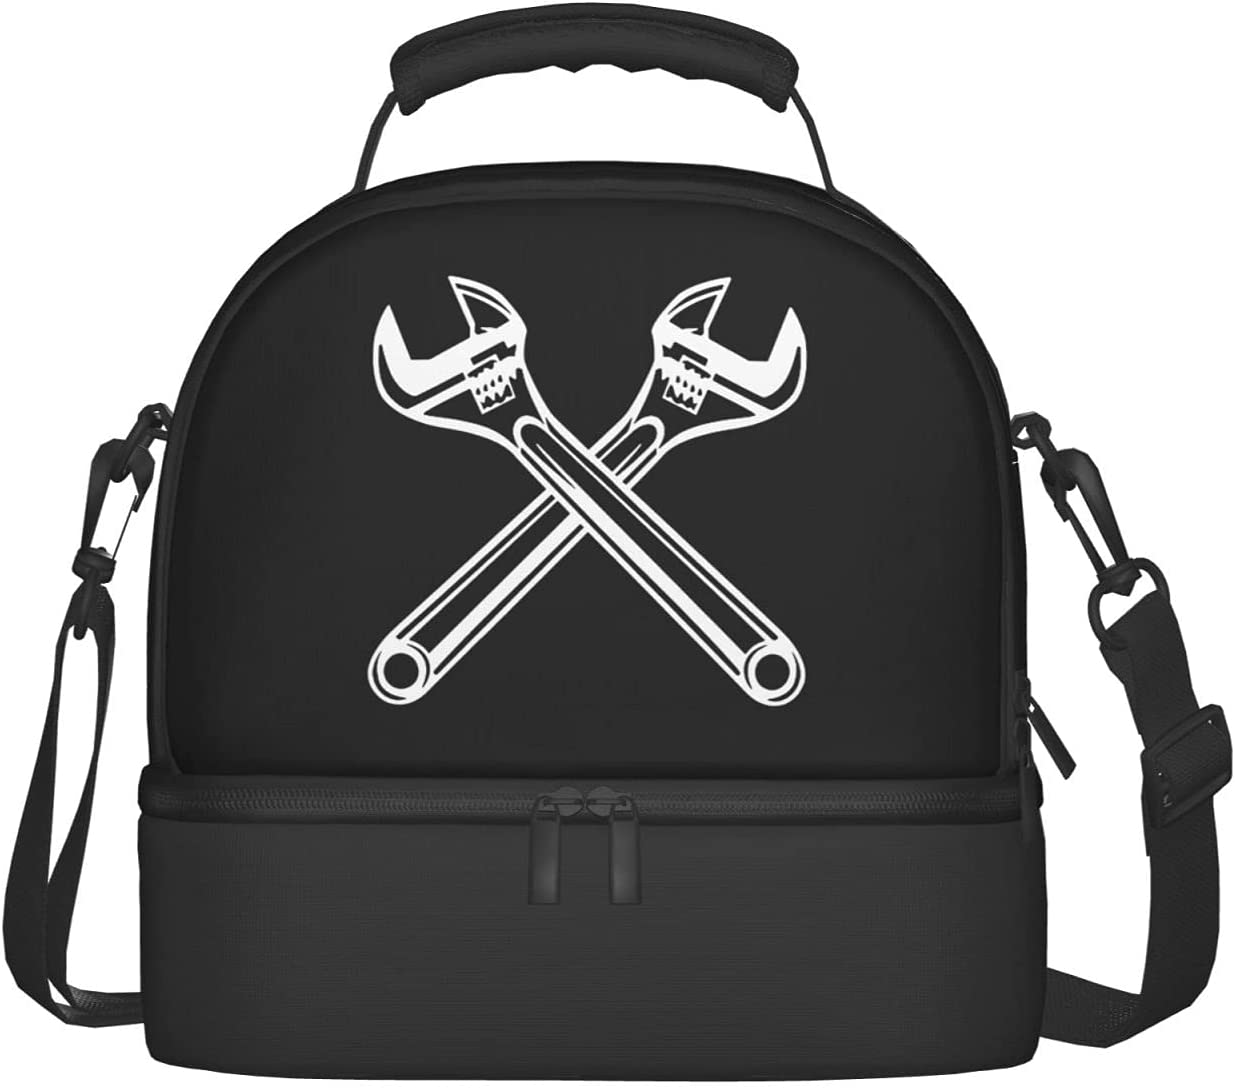 Crewneck Ironworker Crossed Indefinitely Tools List price Lunch In Bags Compartments Two